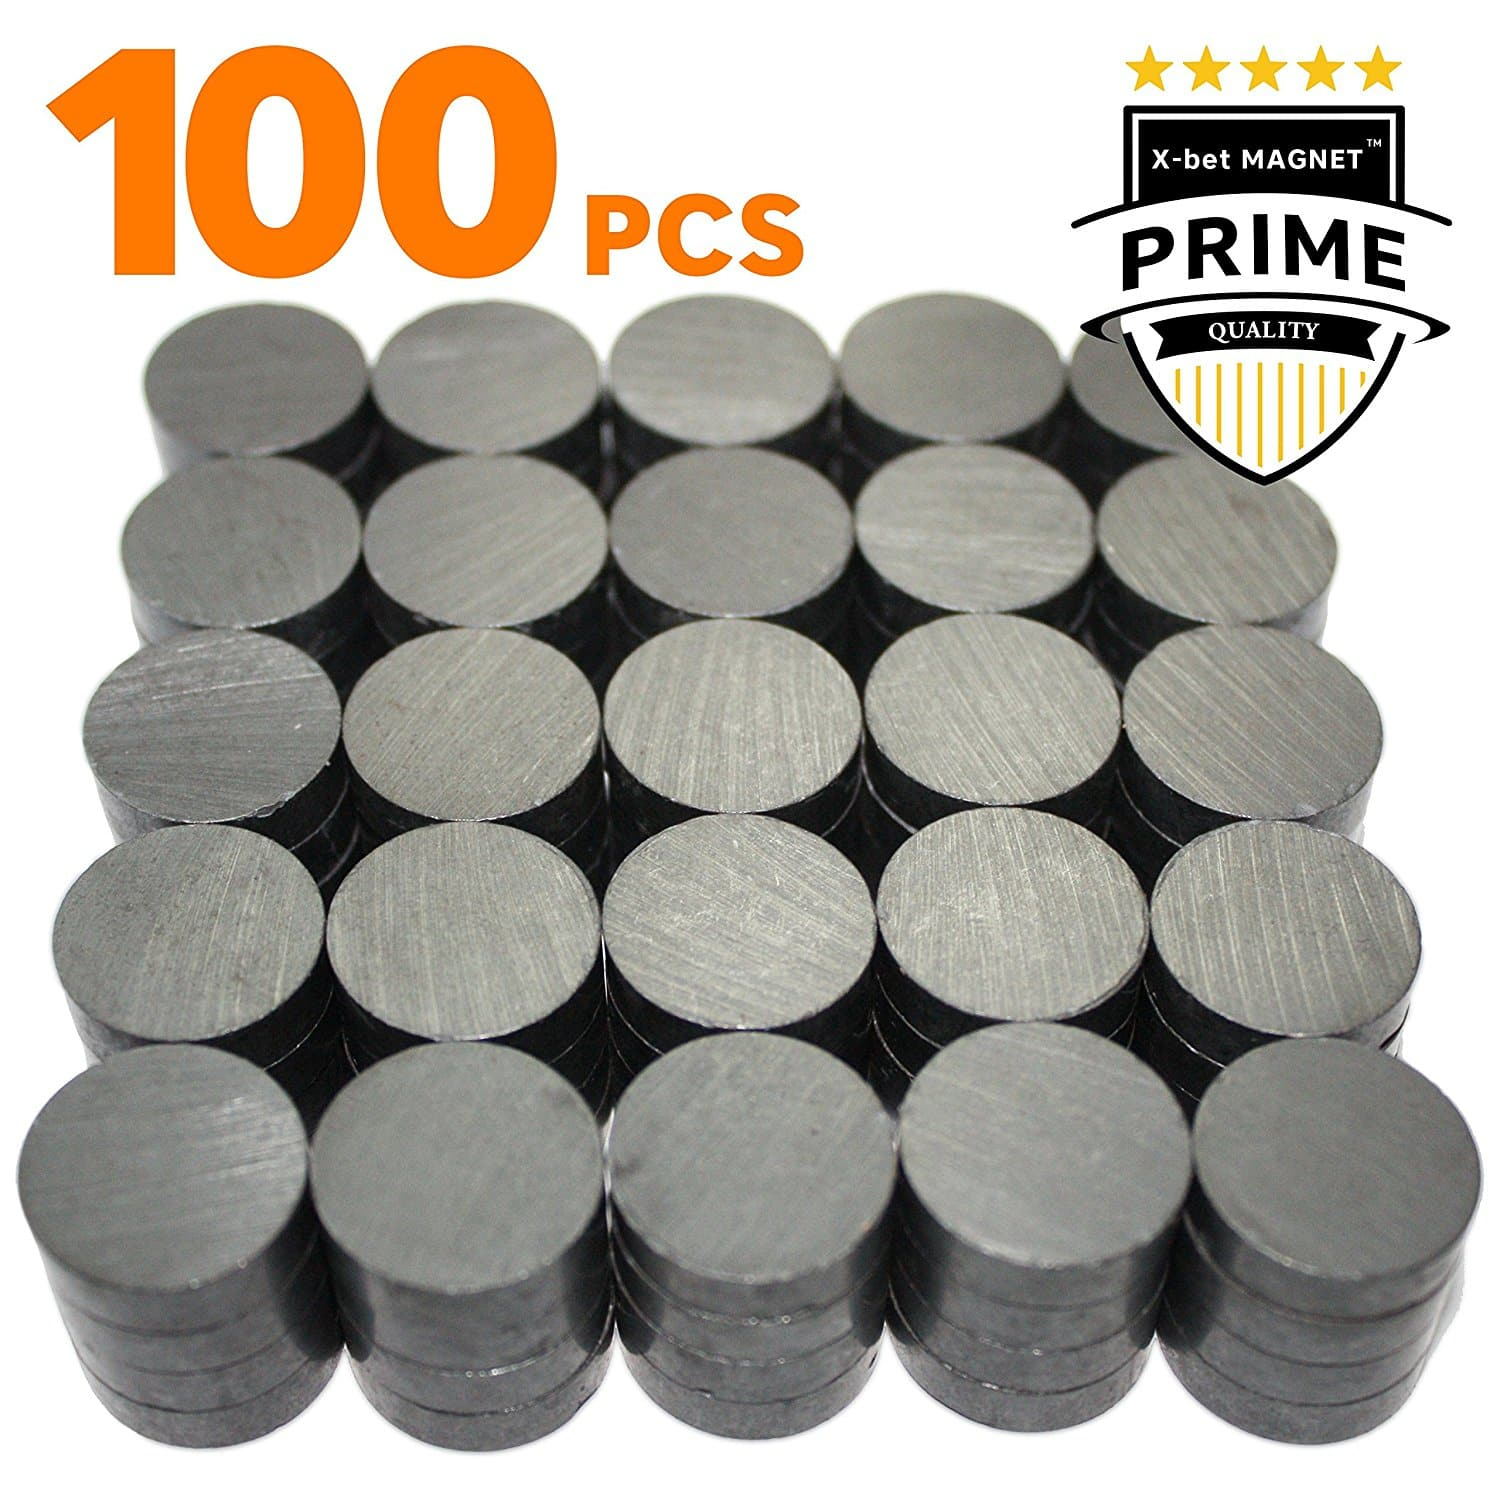 Lightning Deal -  X-bet MAGNET ™ 100 pcs Ceramic Magnets - Tiny 18 mm (.709 inch) Round Disc - Flat Circle Magnets Bulk for Crafts, Science & hobbies - $12.79